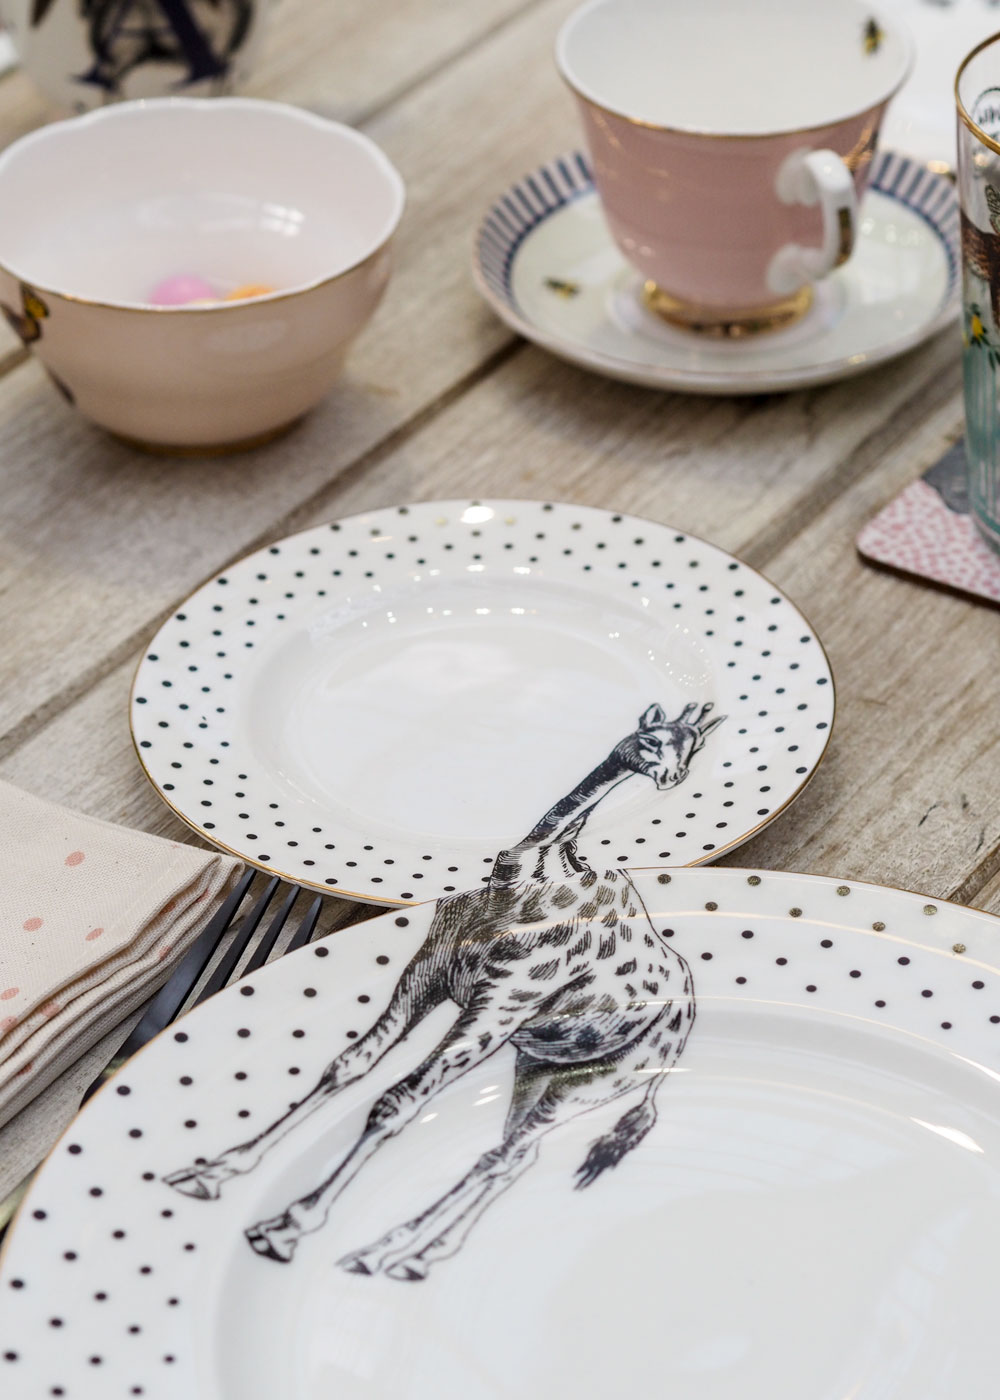 Today I'm sharing 18 highlights from Top Drawer AW18, covering homeware, interiors, gift, wellness, stationery, fashion and more.